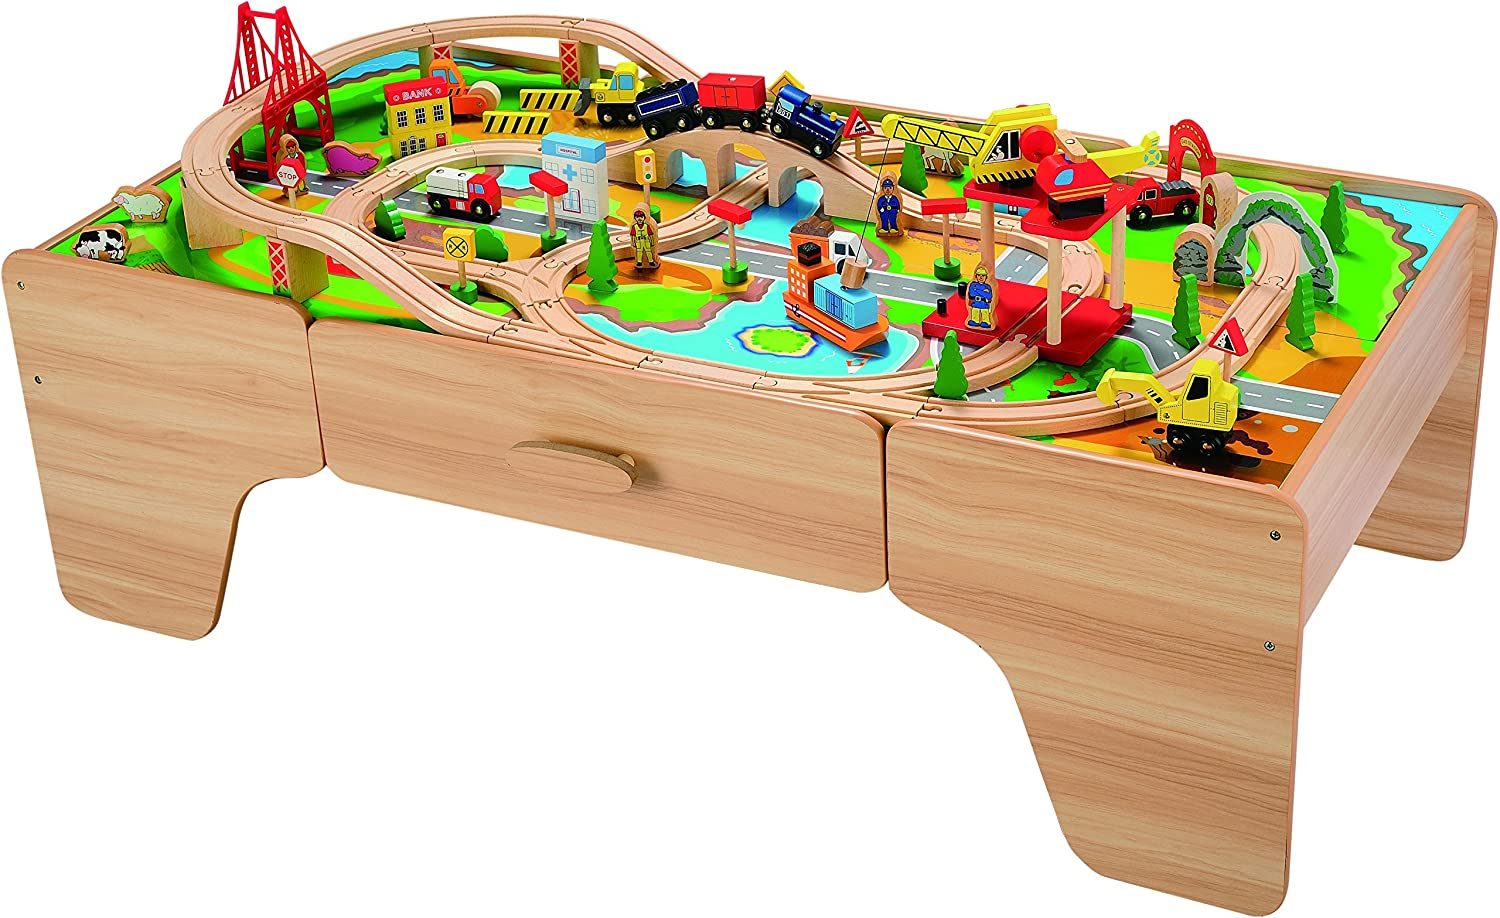 Butternut Construction Wooden Train Set and Table Amazon.co.uk Toys \u0026 Games  sc 1 st  Amazon UK & Butternut Construction Wooden Train Set and Table: Amazon.co.uk ...